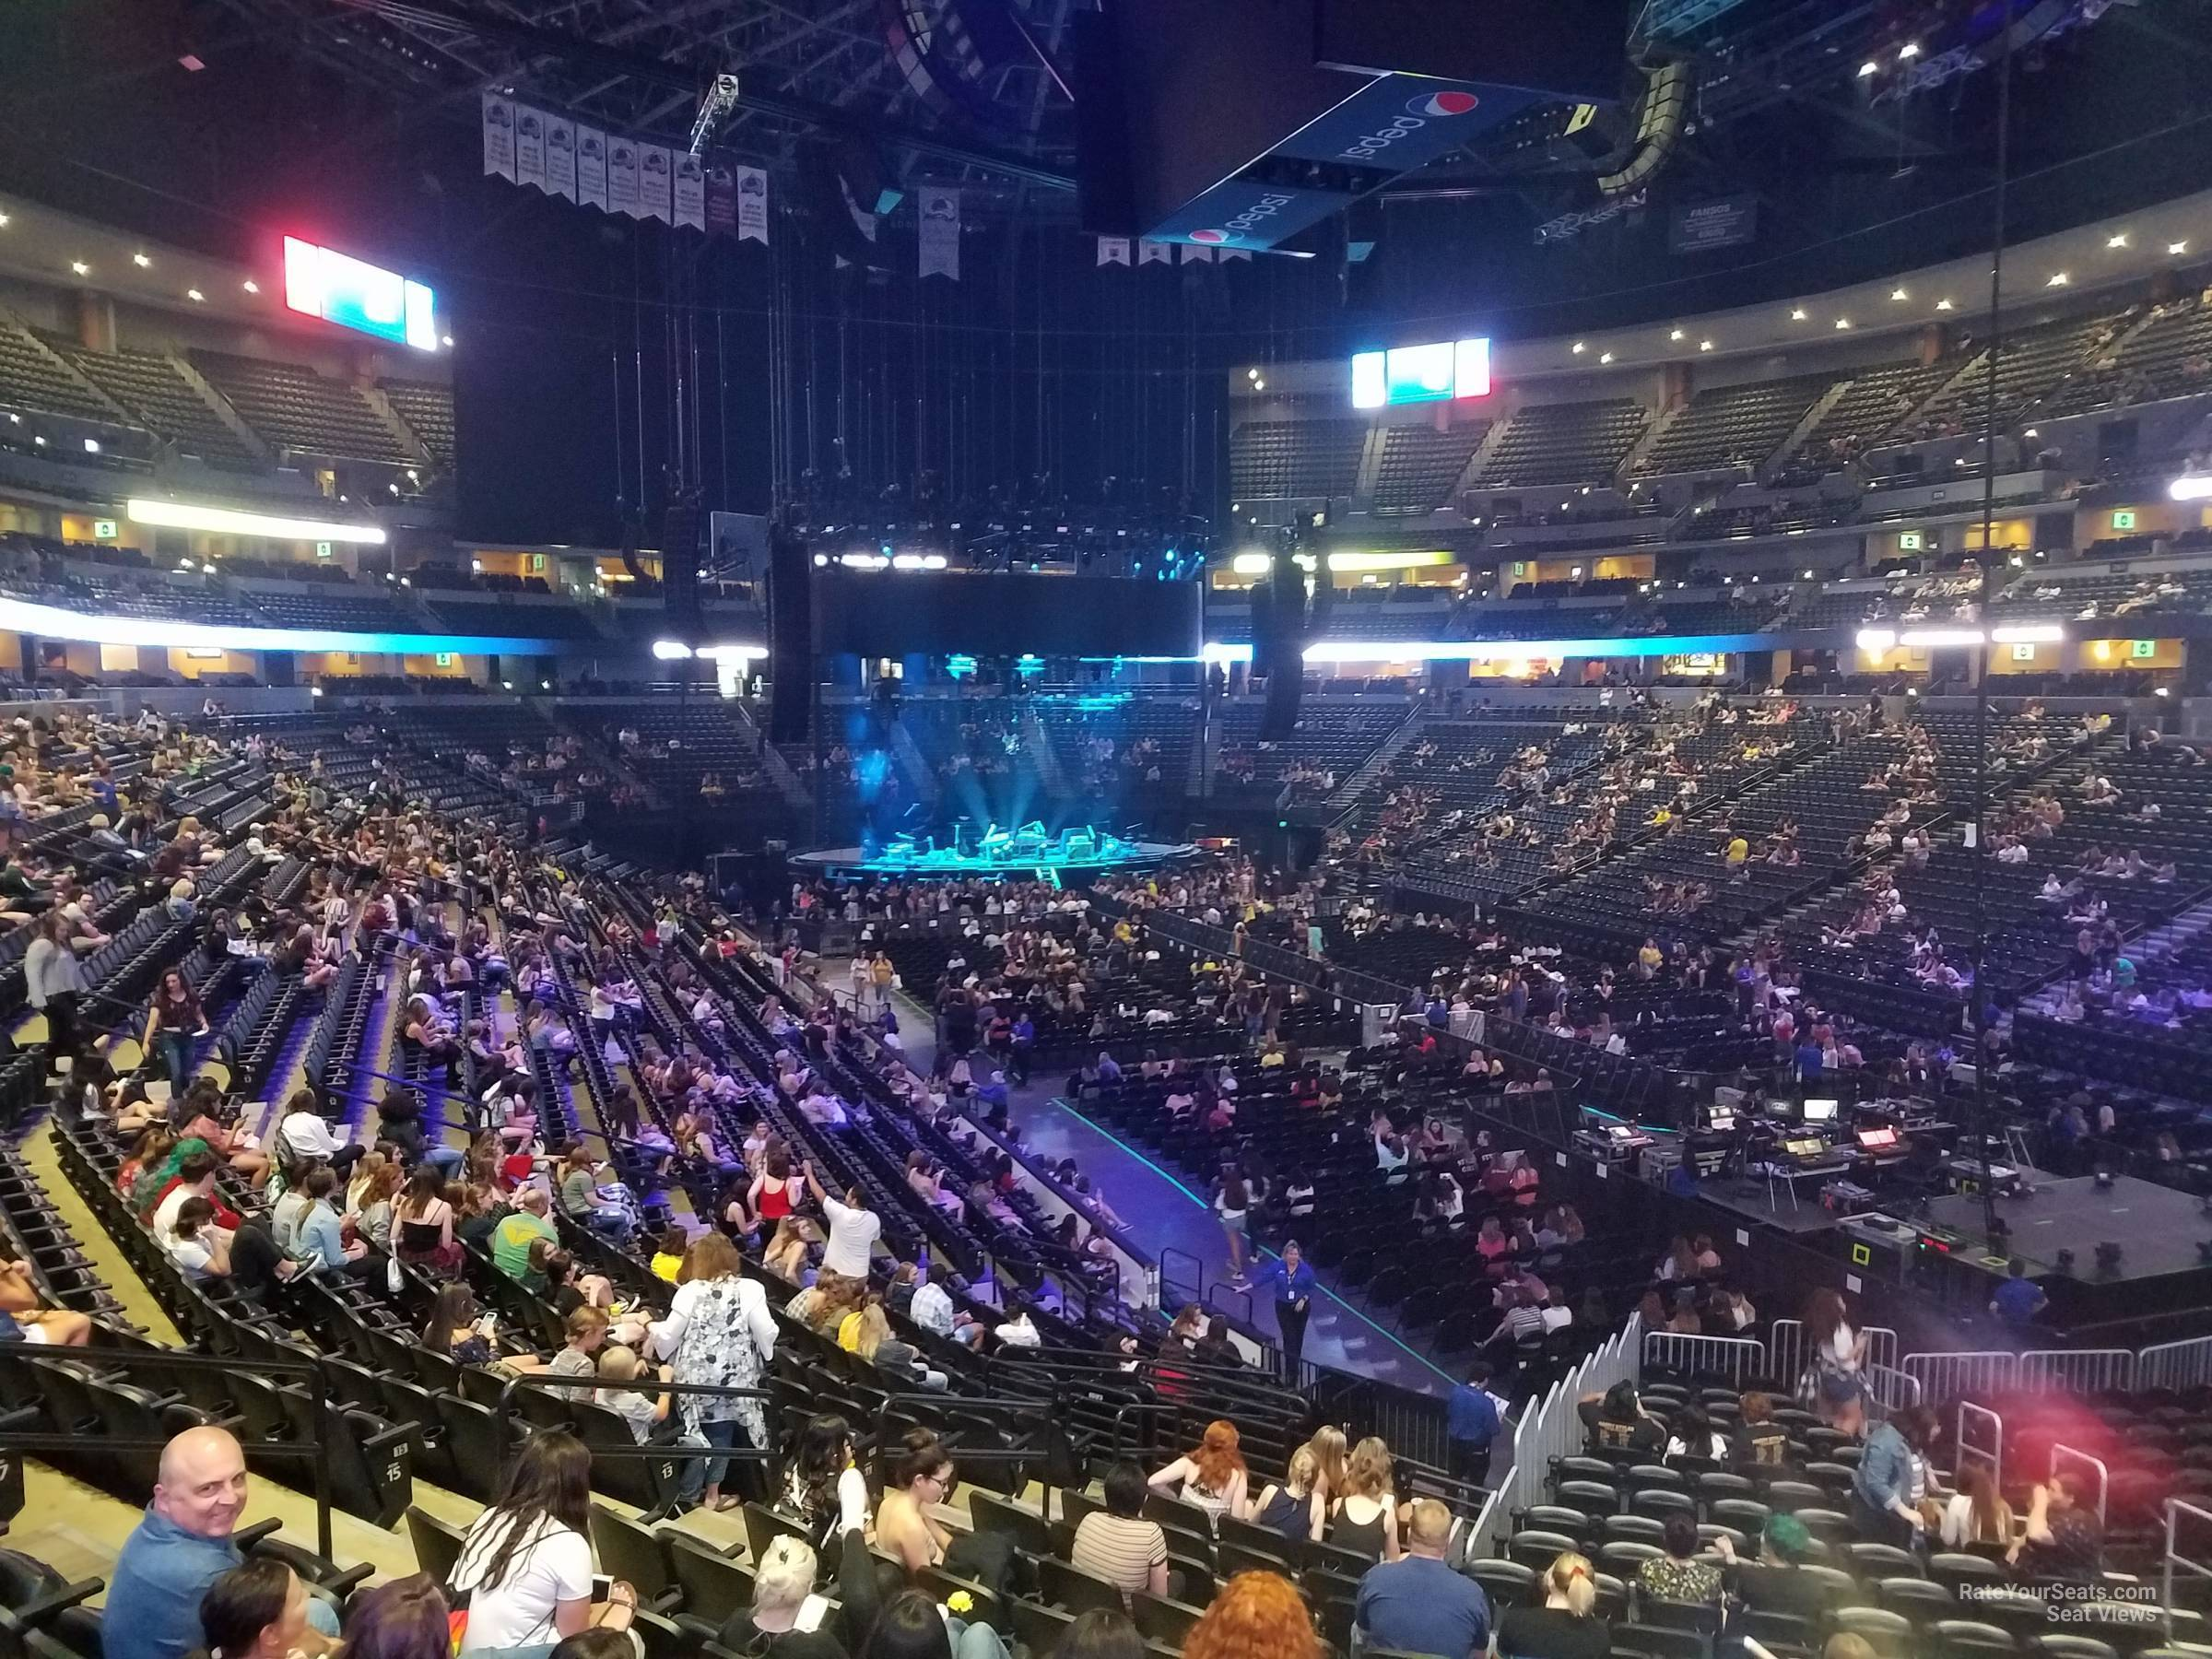 Pepsi Center: Pepsi Center Section 118 Concert Seating